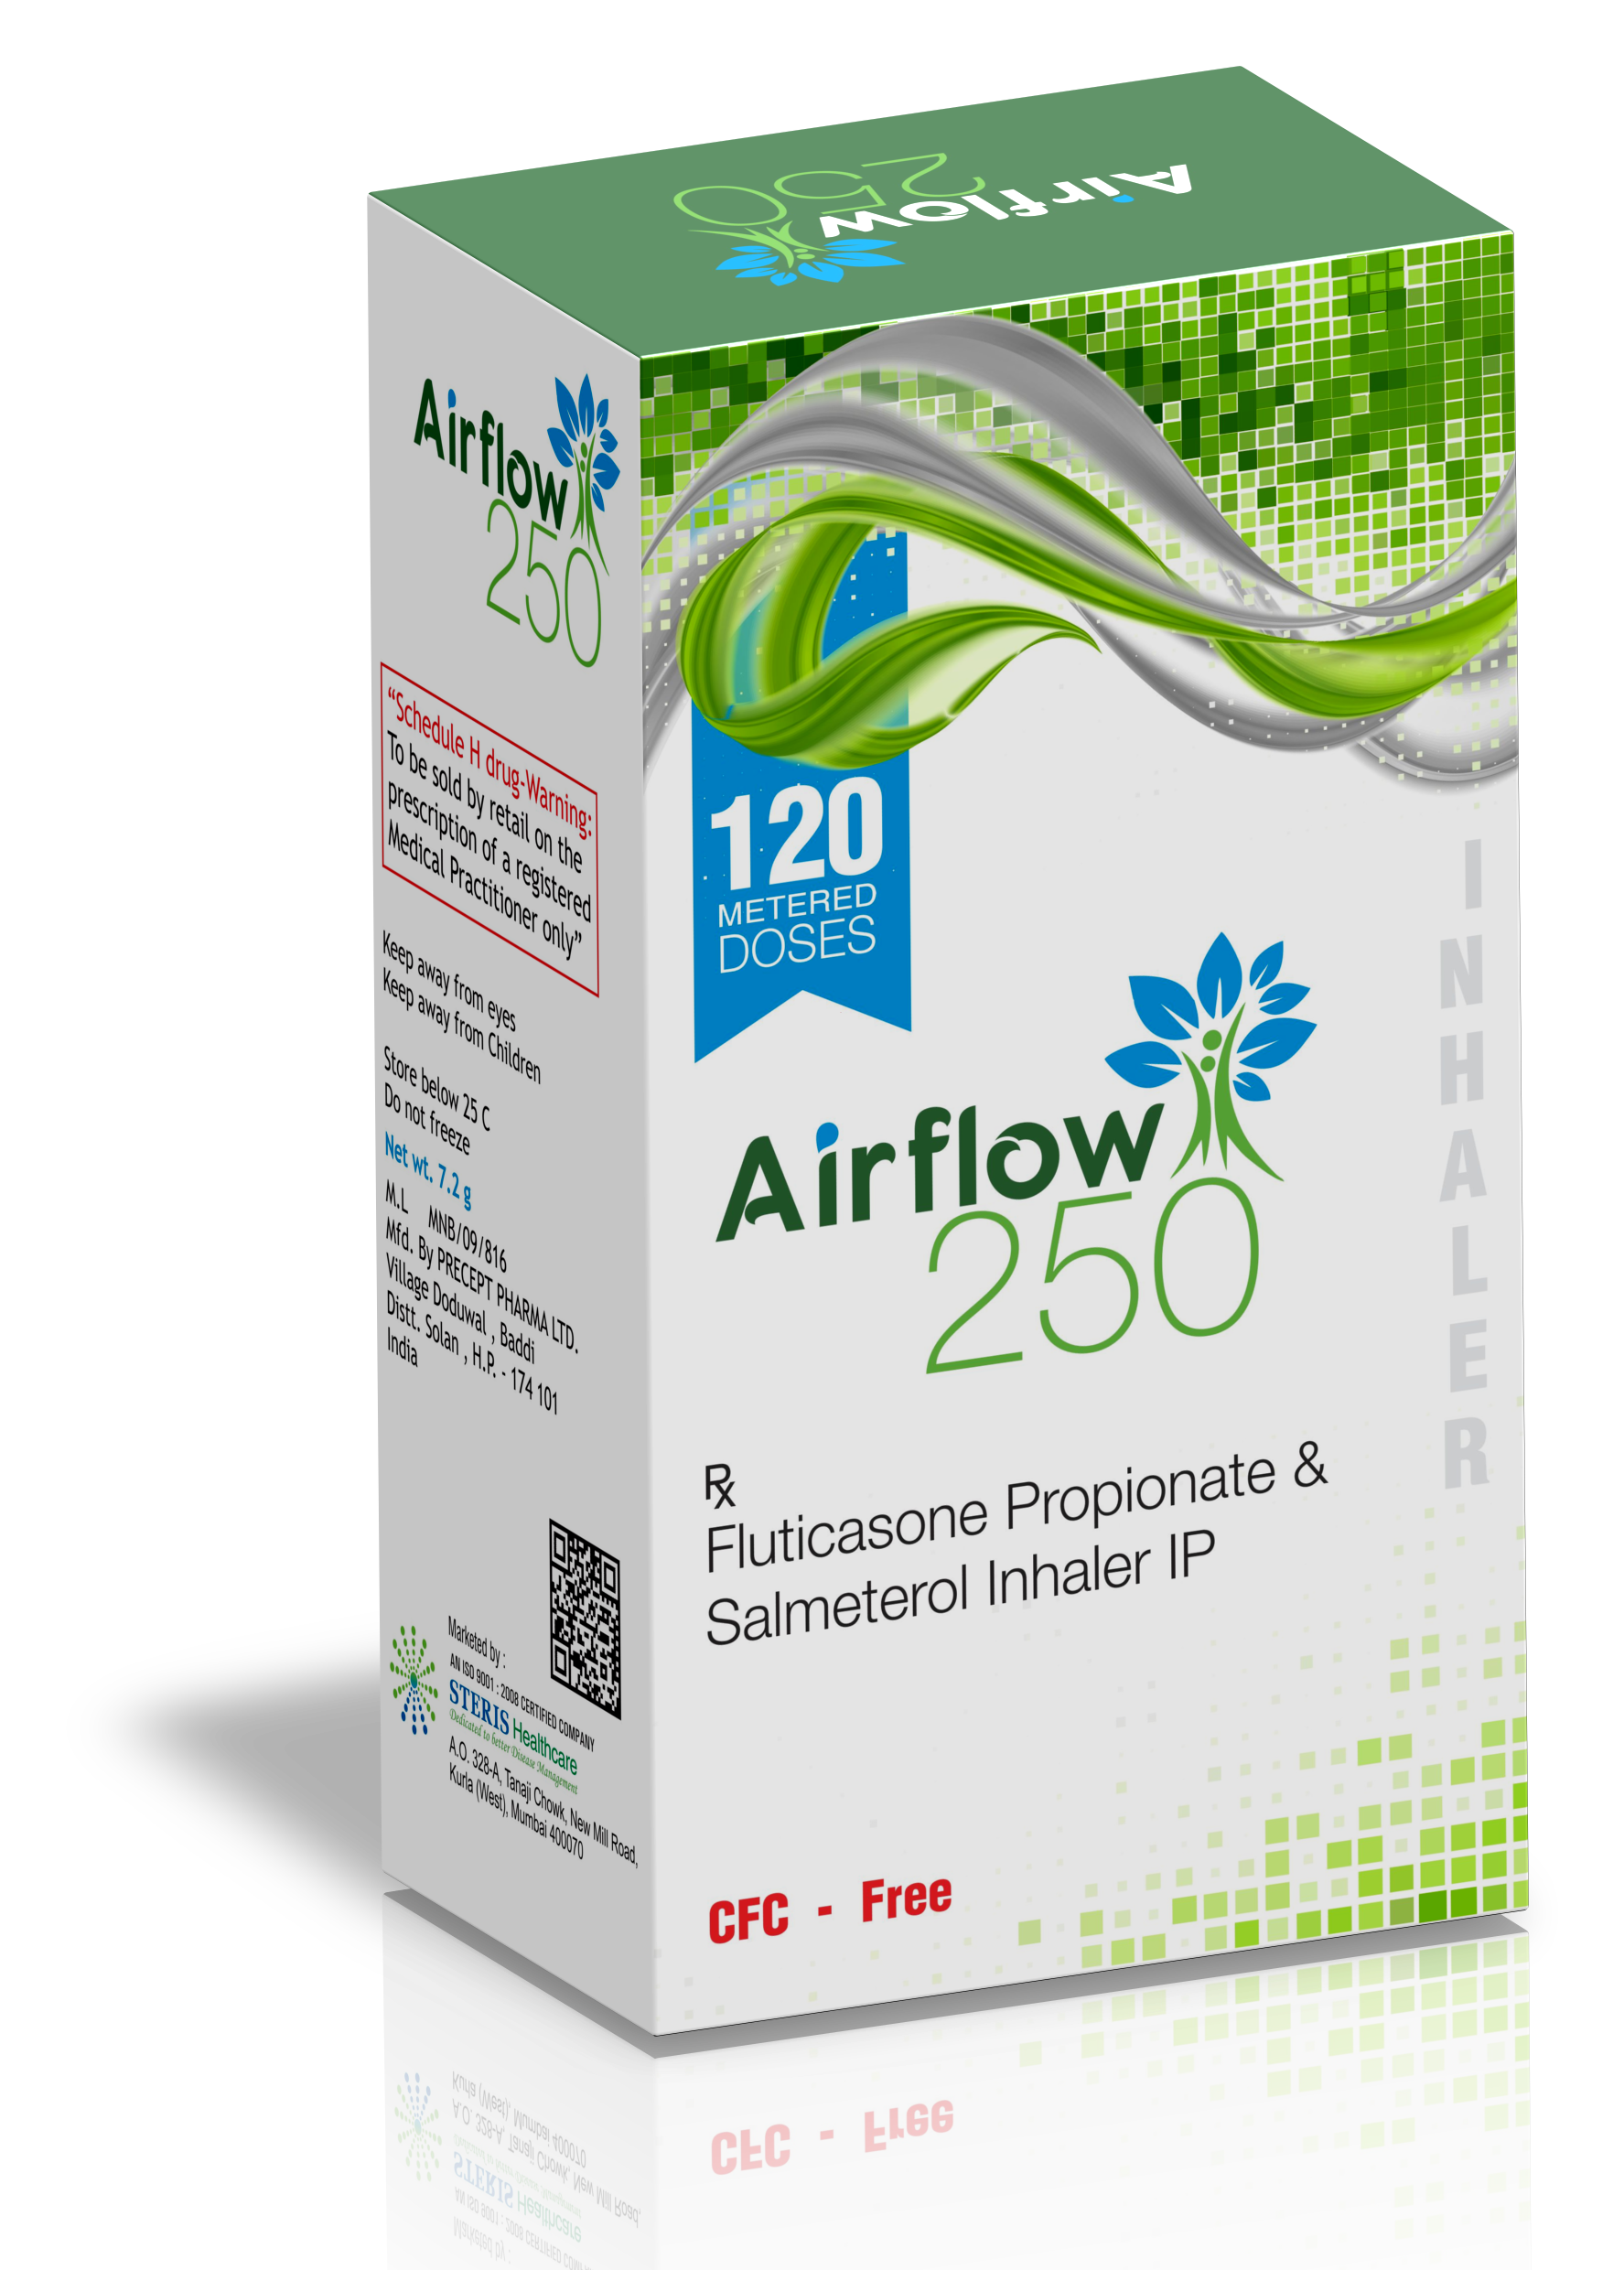 7292853616AIR-FLOW-250.png